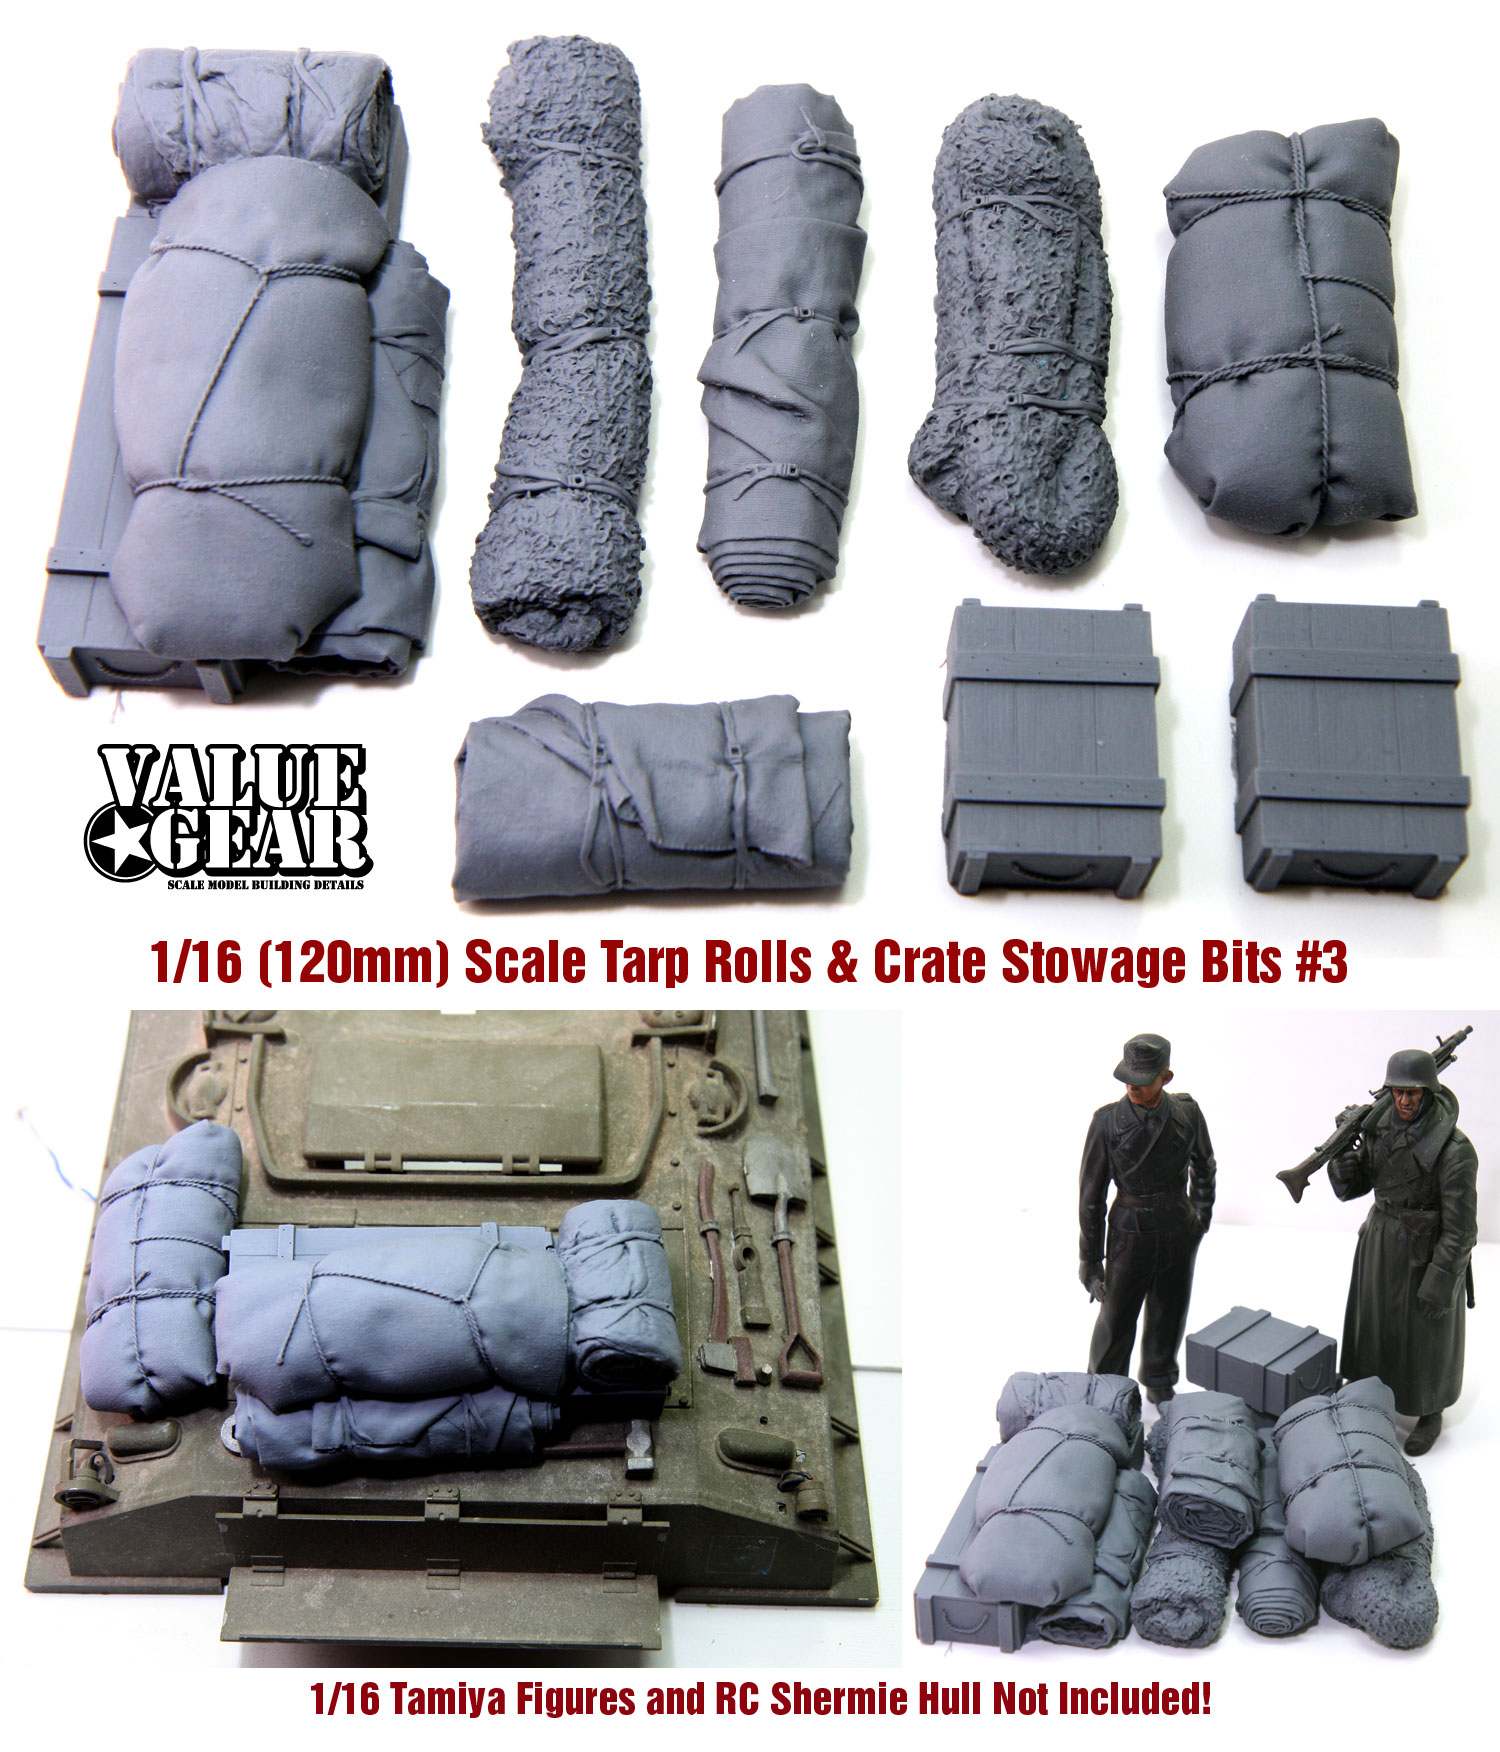 Value Gear Tarp /& Crates Stowage Set #2 1//72 Scale Resin Tent